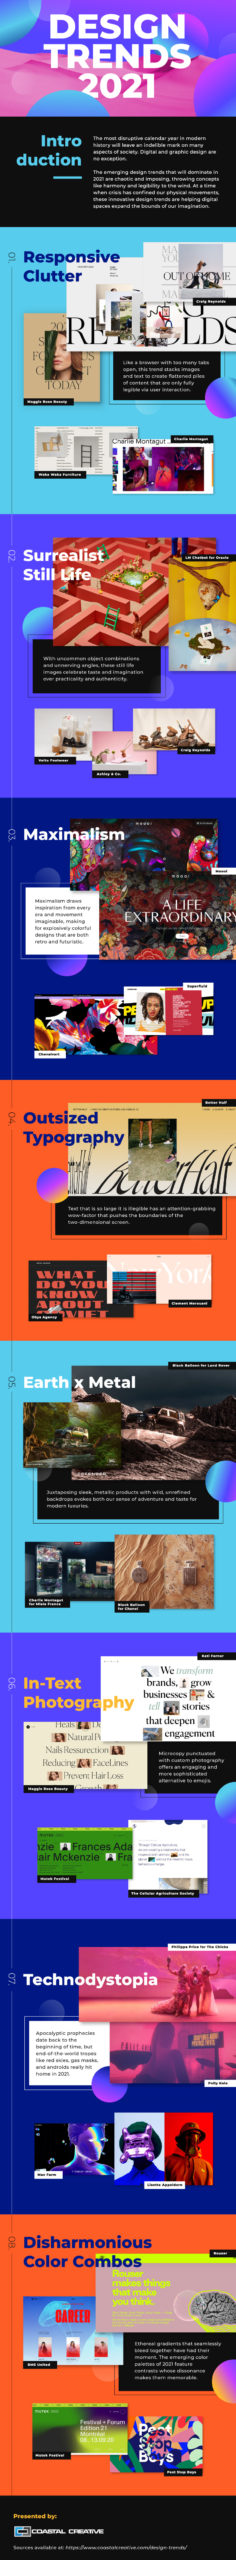 Digital and Graphic Design Trends 2021 Image